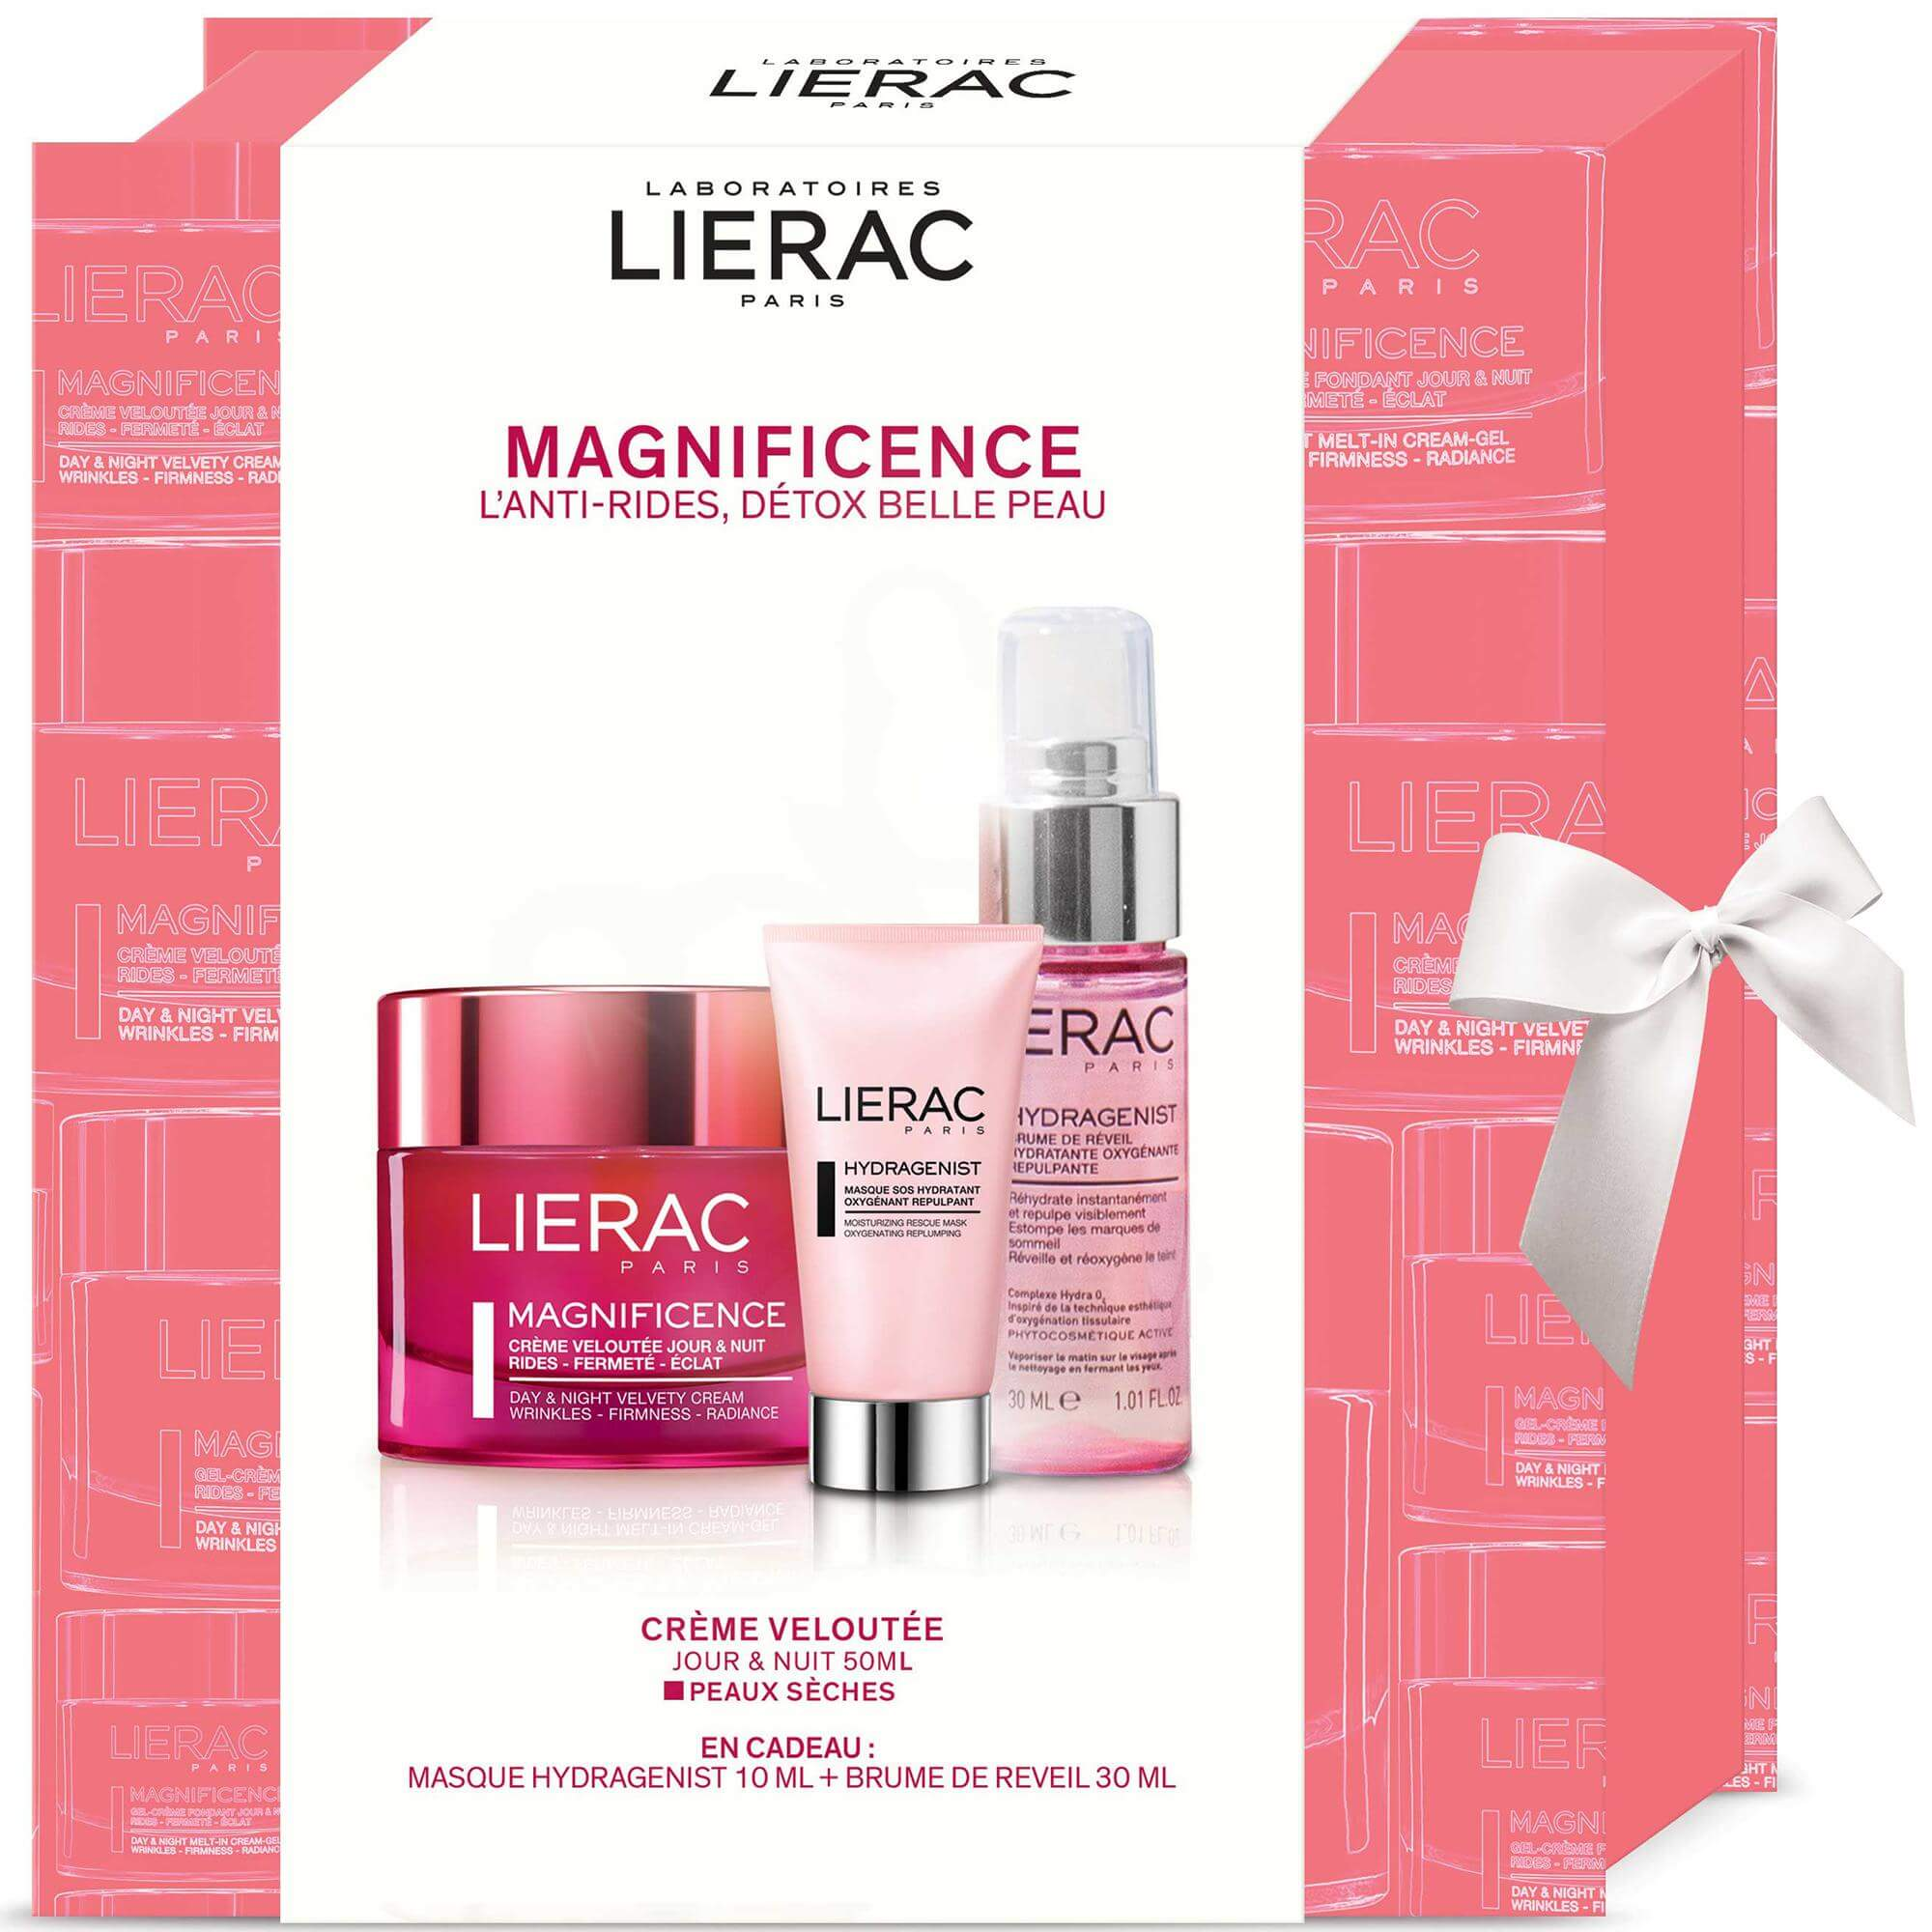 Lierac Πακέτο Προσφοράς Magnificence Creme Veloutee Jour & Nuit 50ml & Δώρο Hydragenist Masque 10ml & Brume de Reveil 30ml